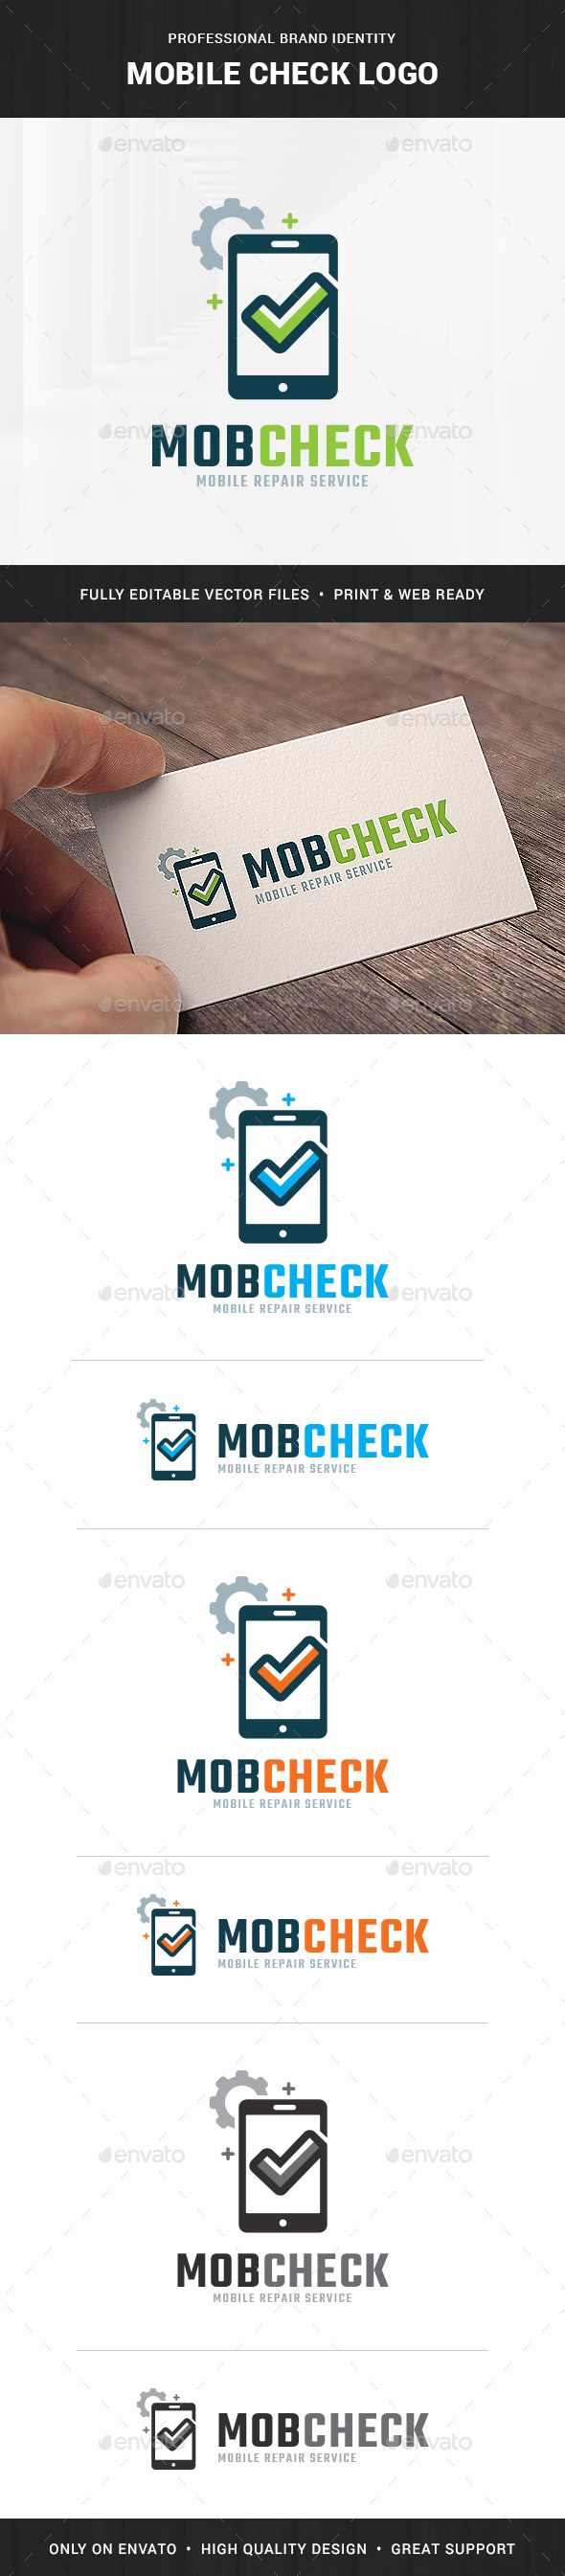 Mobile Check Logo Template - Objects Logo Templates